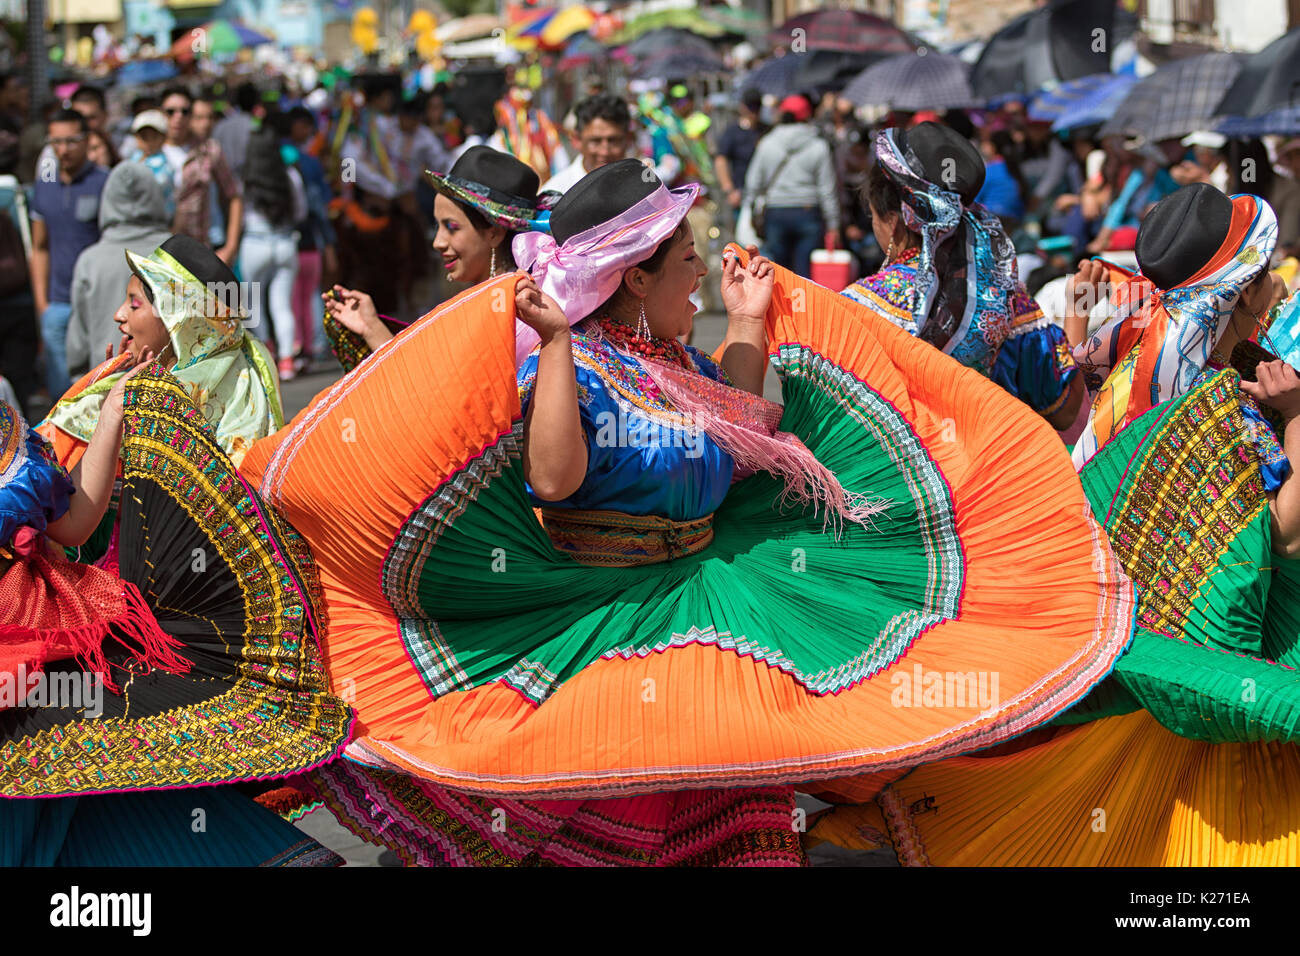 June 17, 2017 Pujili, Ecuador: female dancer group  in traditional clothing in motion at the Corpus Christi annual parade - Stock Image